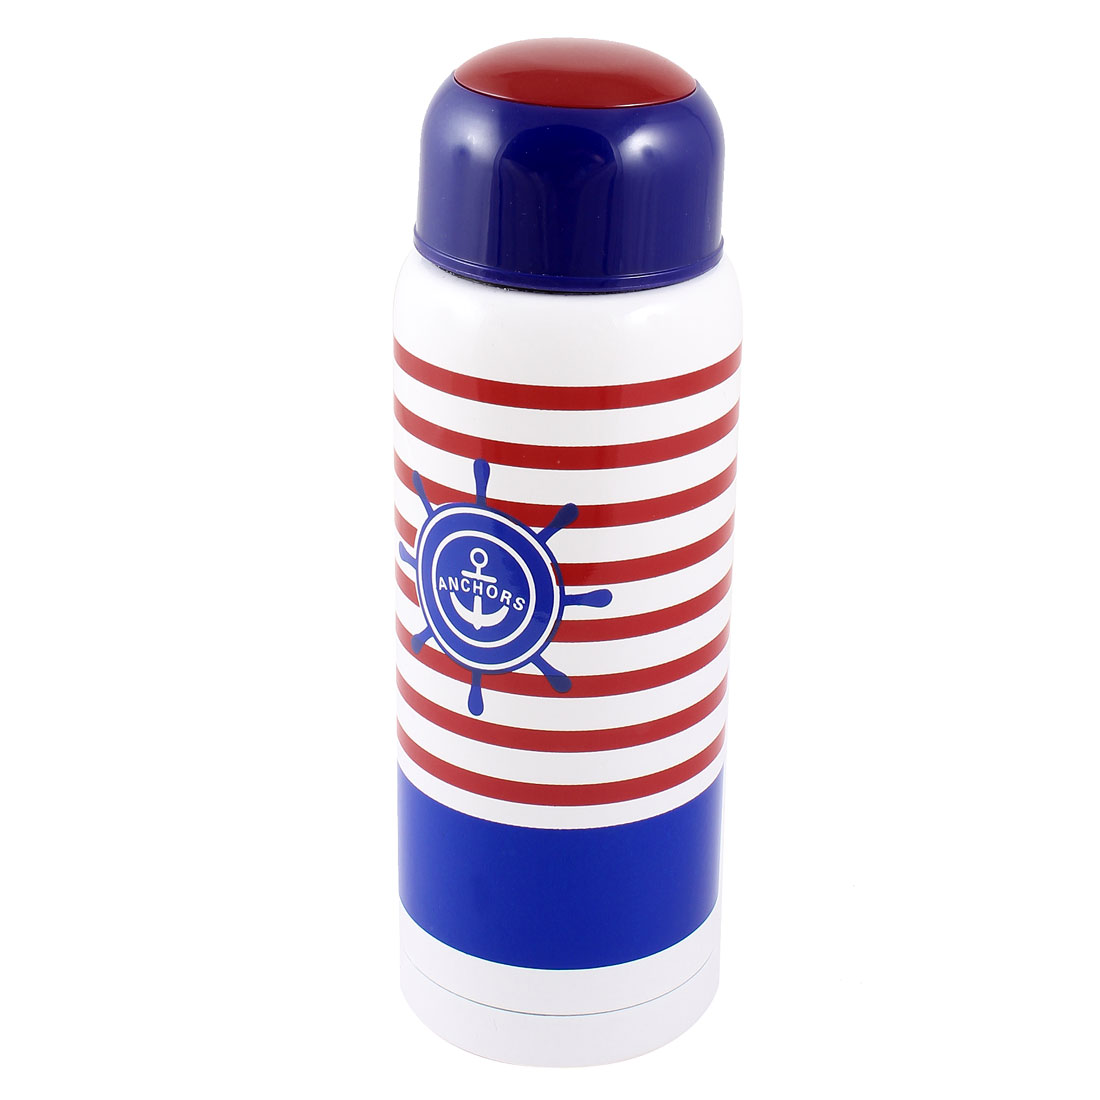 260ml Blue White Red Portable Camping Hiking Stripe Pattern Stainless Steel Coffee Tea Vacuum Insulating Bottle Water Cup